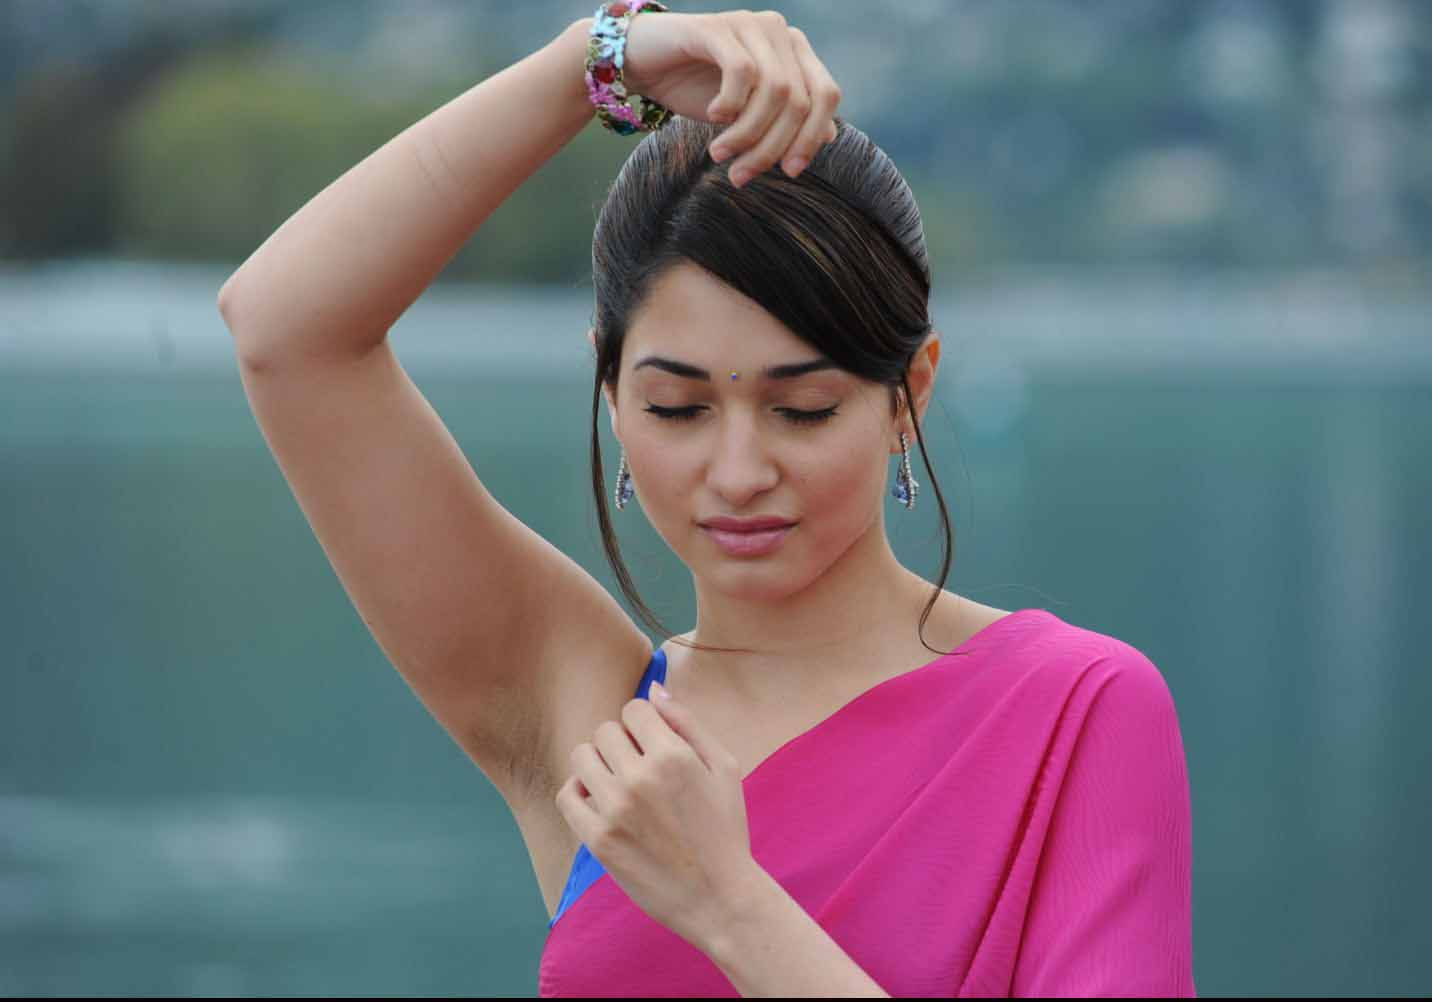 Tamanna Photo Gallery: South Mp3 Songs: Tamanna Latest Photo Gallery From Racha Movie